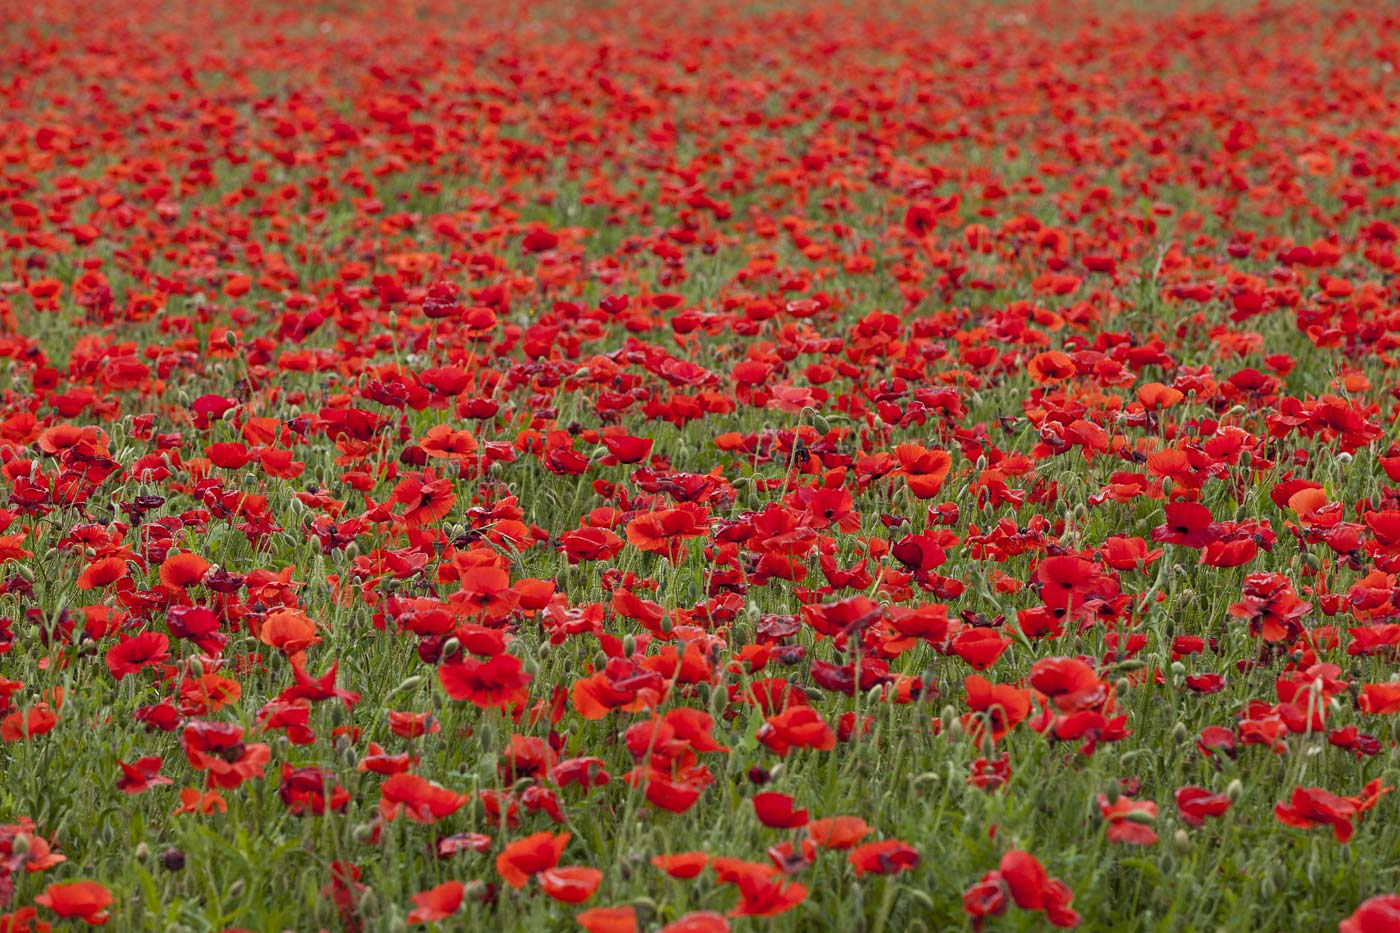 wildflowers-ABP-Red-Corn-Poppy_field.jpg